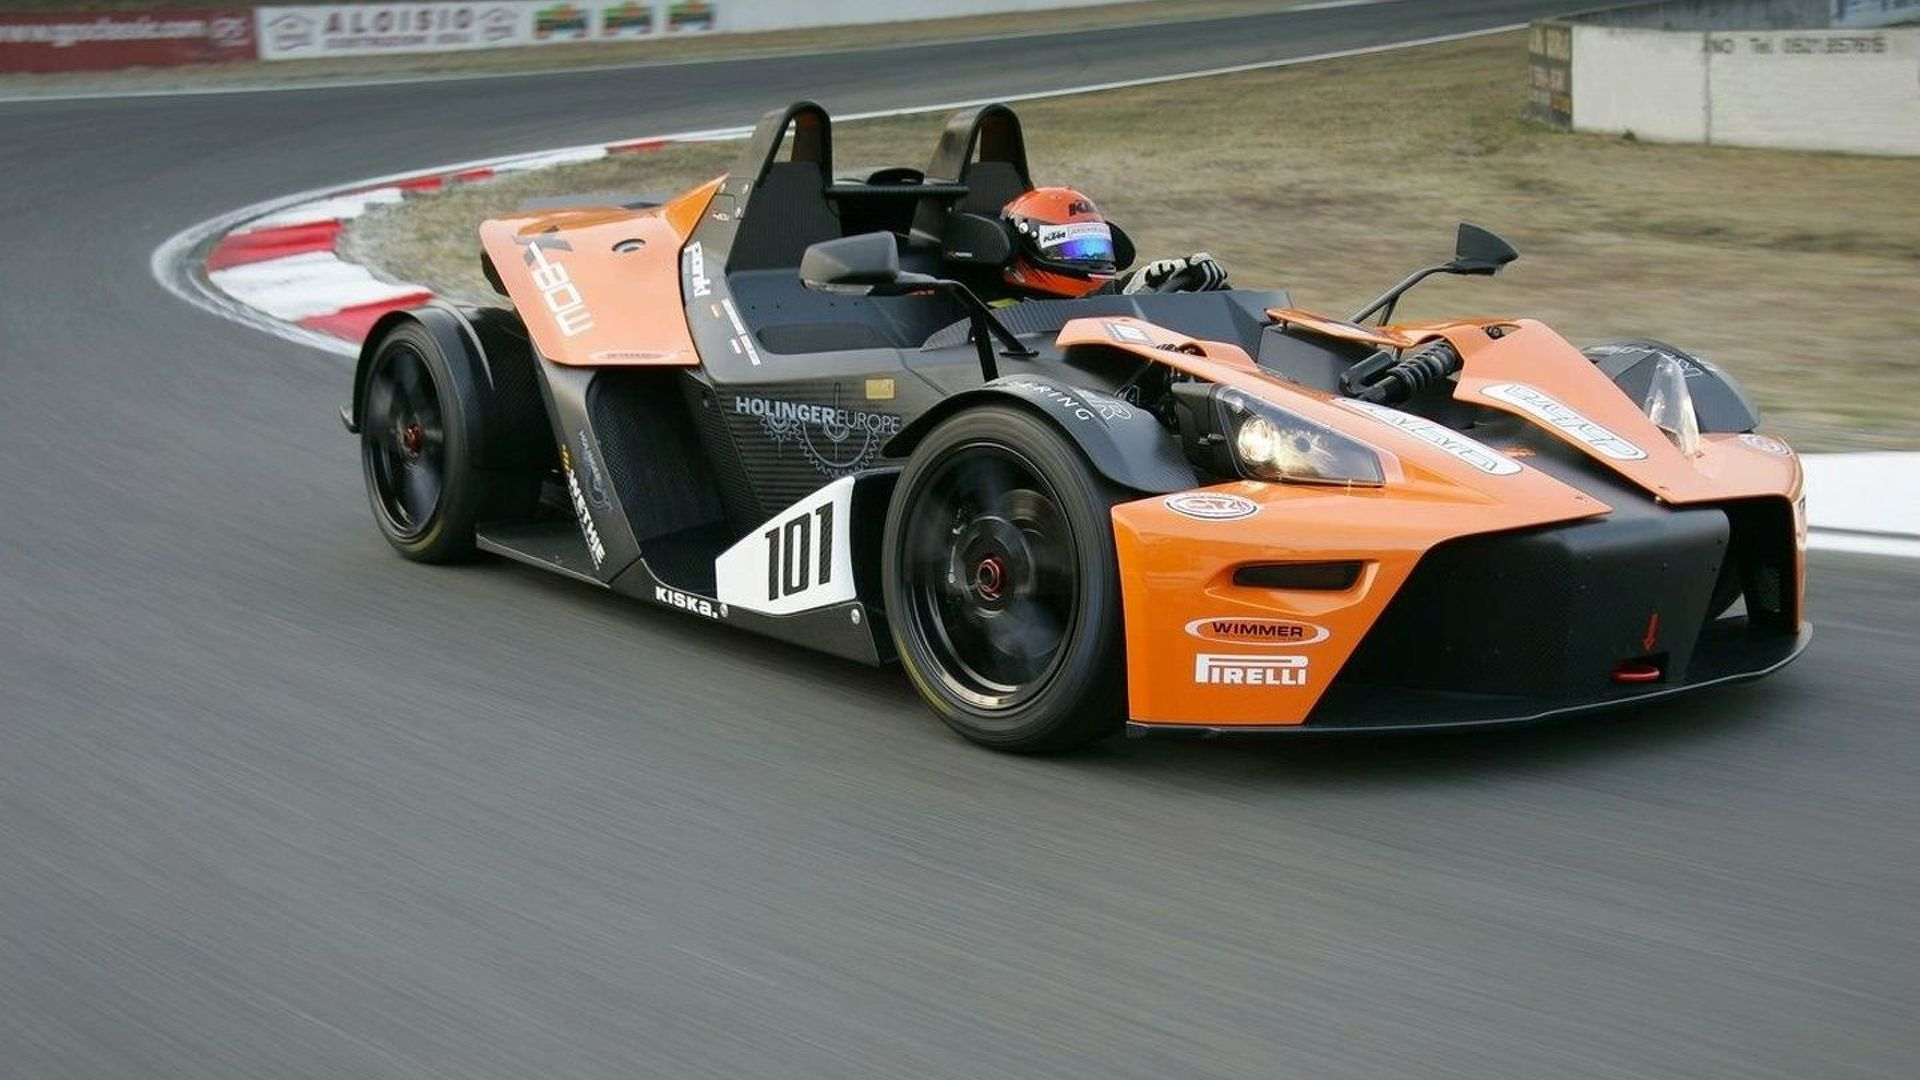 Ktm X Bow Price >> Ktm X Bow Race Model Priced At Eur 82 900 Ex Works